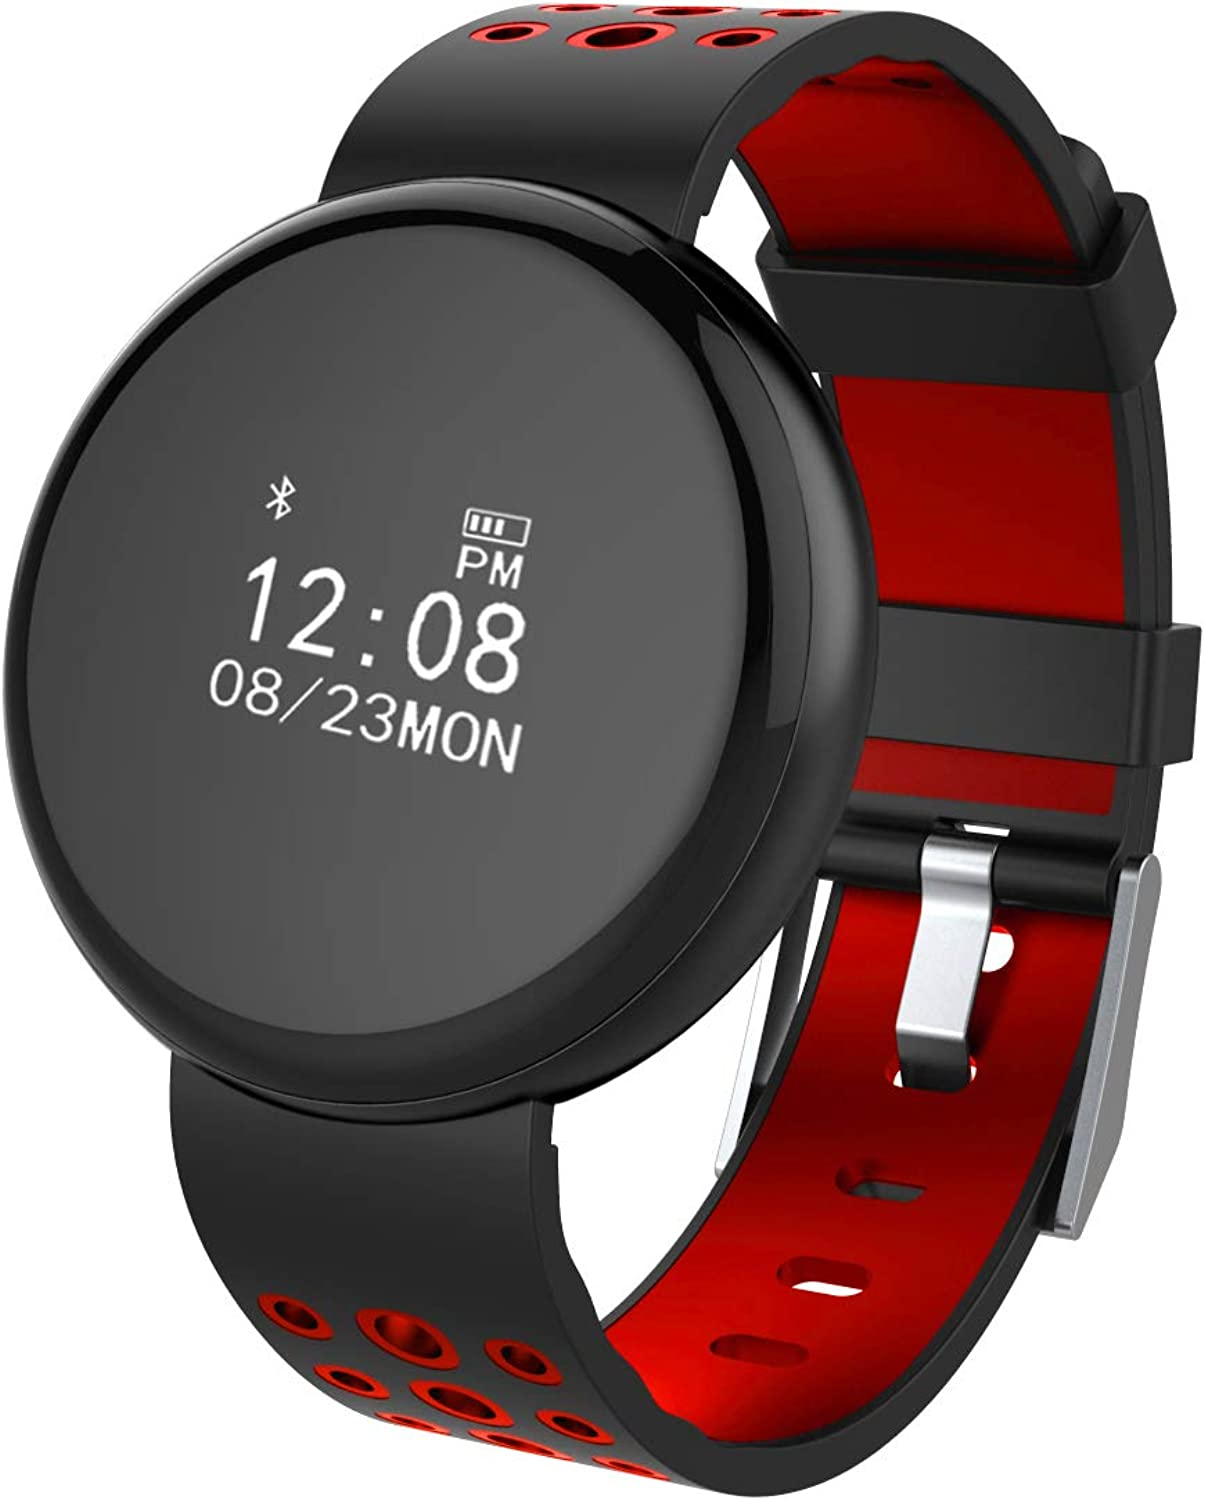 Smart Bracelet with Heart Rate Sports Healthy blueeetooth Watch Waterproof Calorie Pedometer Fitness Tracker